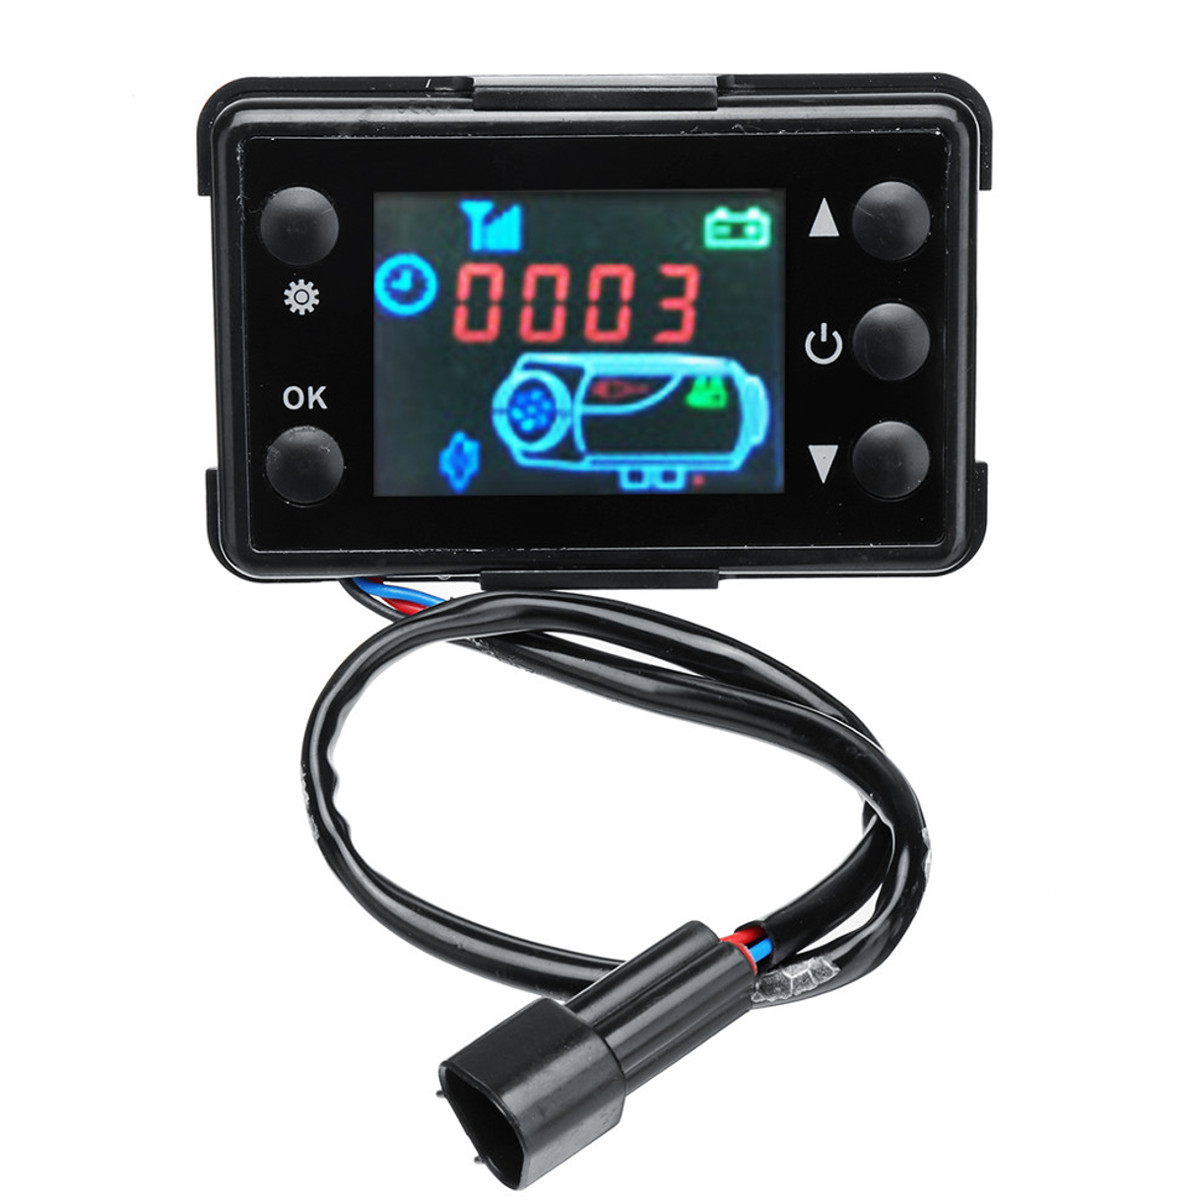 12v/24v 3/5kw Lcd Monitor Parking Heater Switch Car Heating Device Controller Universal For Car Track Air Heater Atv,rv,boat & Other Vehicle